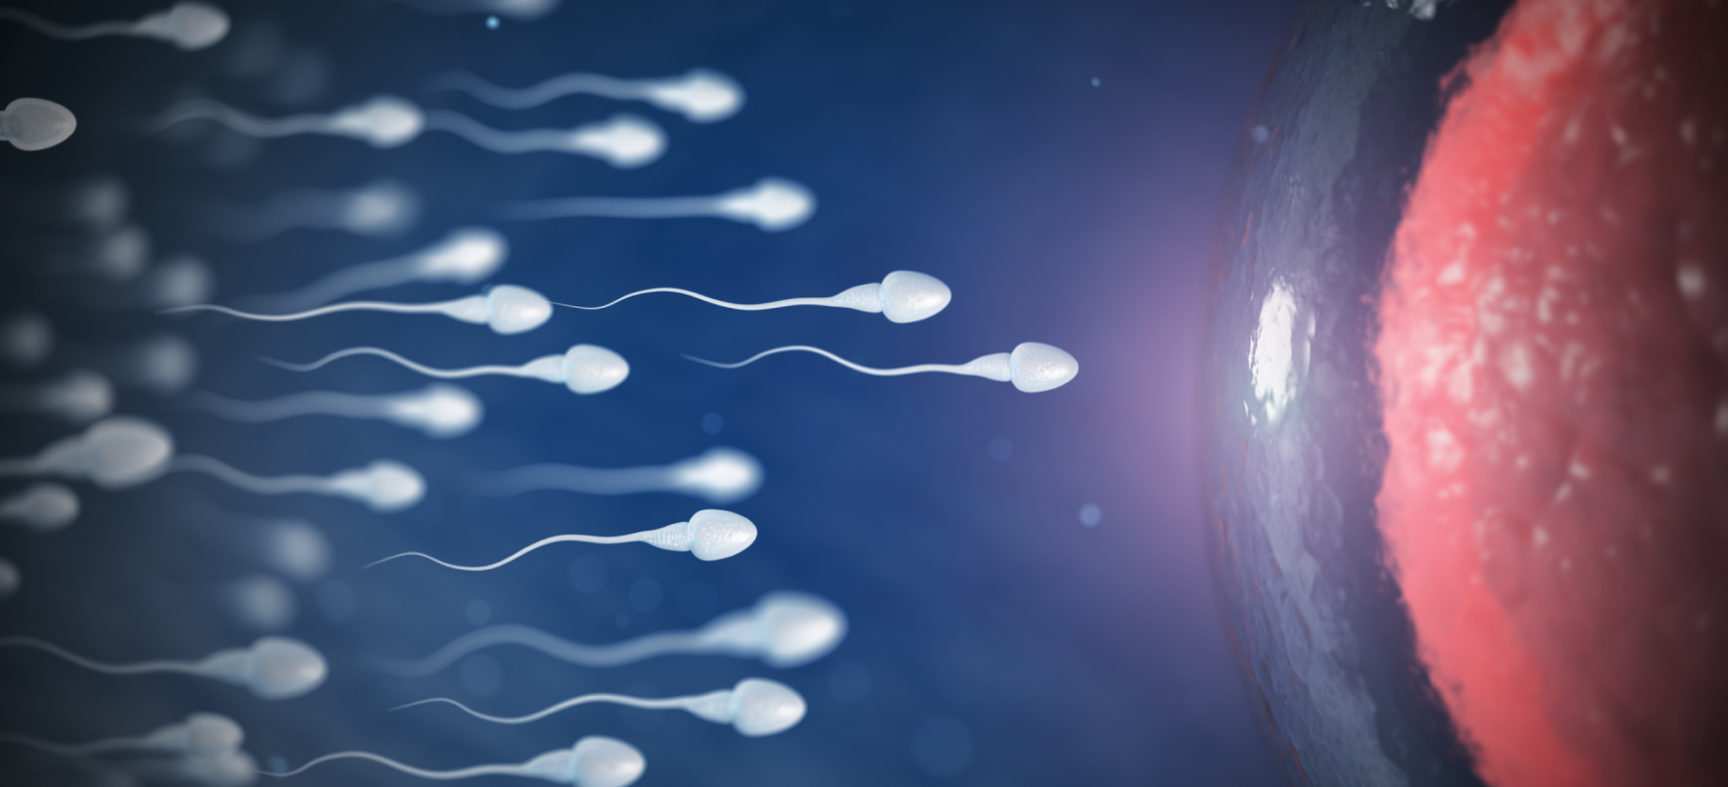 Causes of Infertility: What You Need to Know